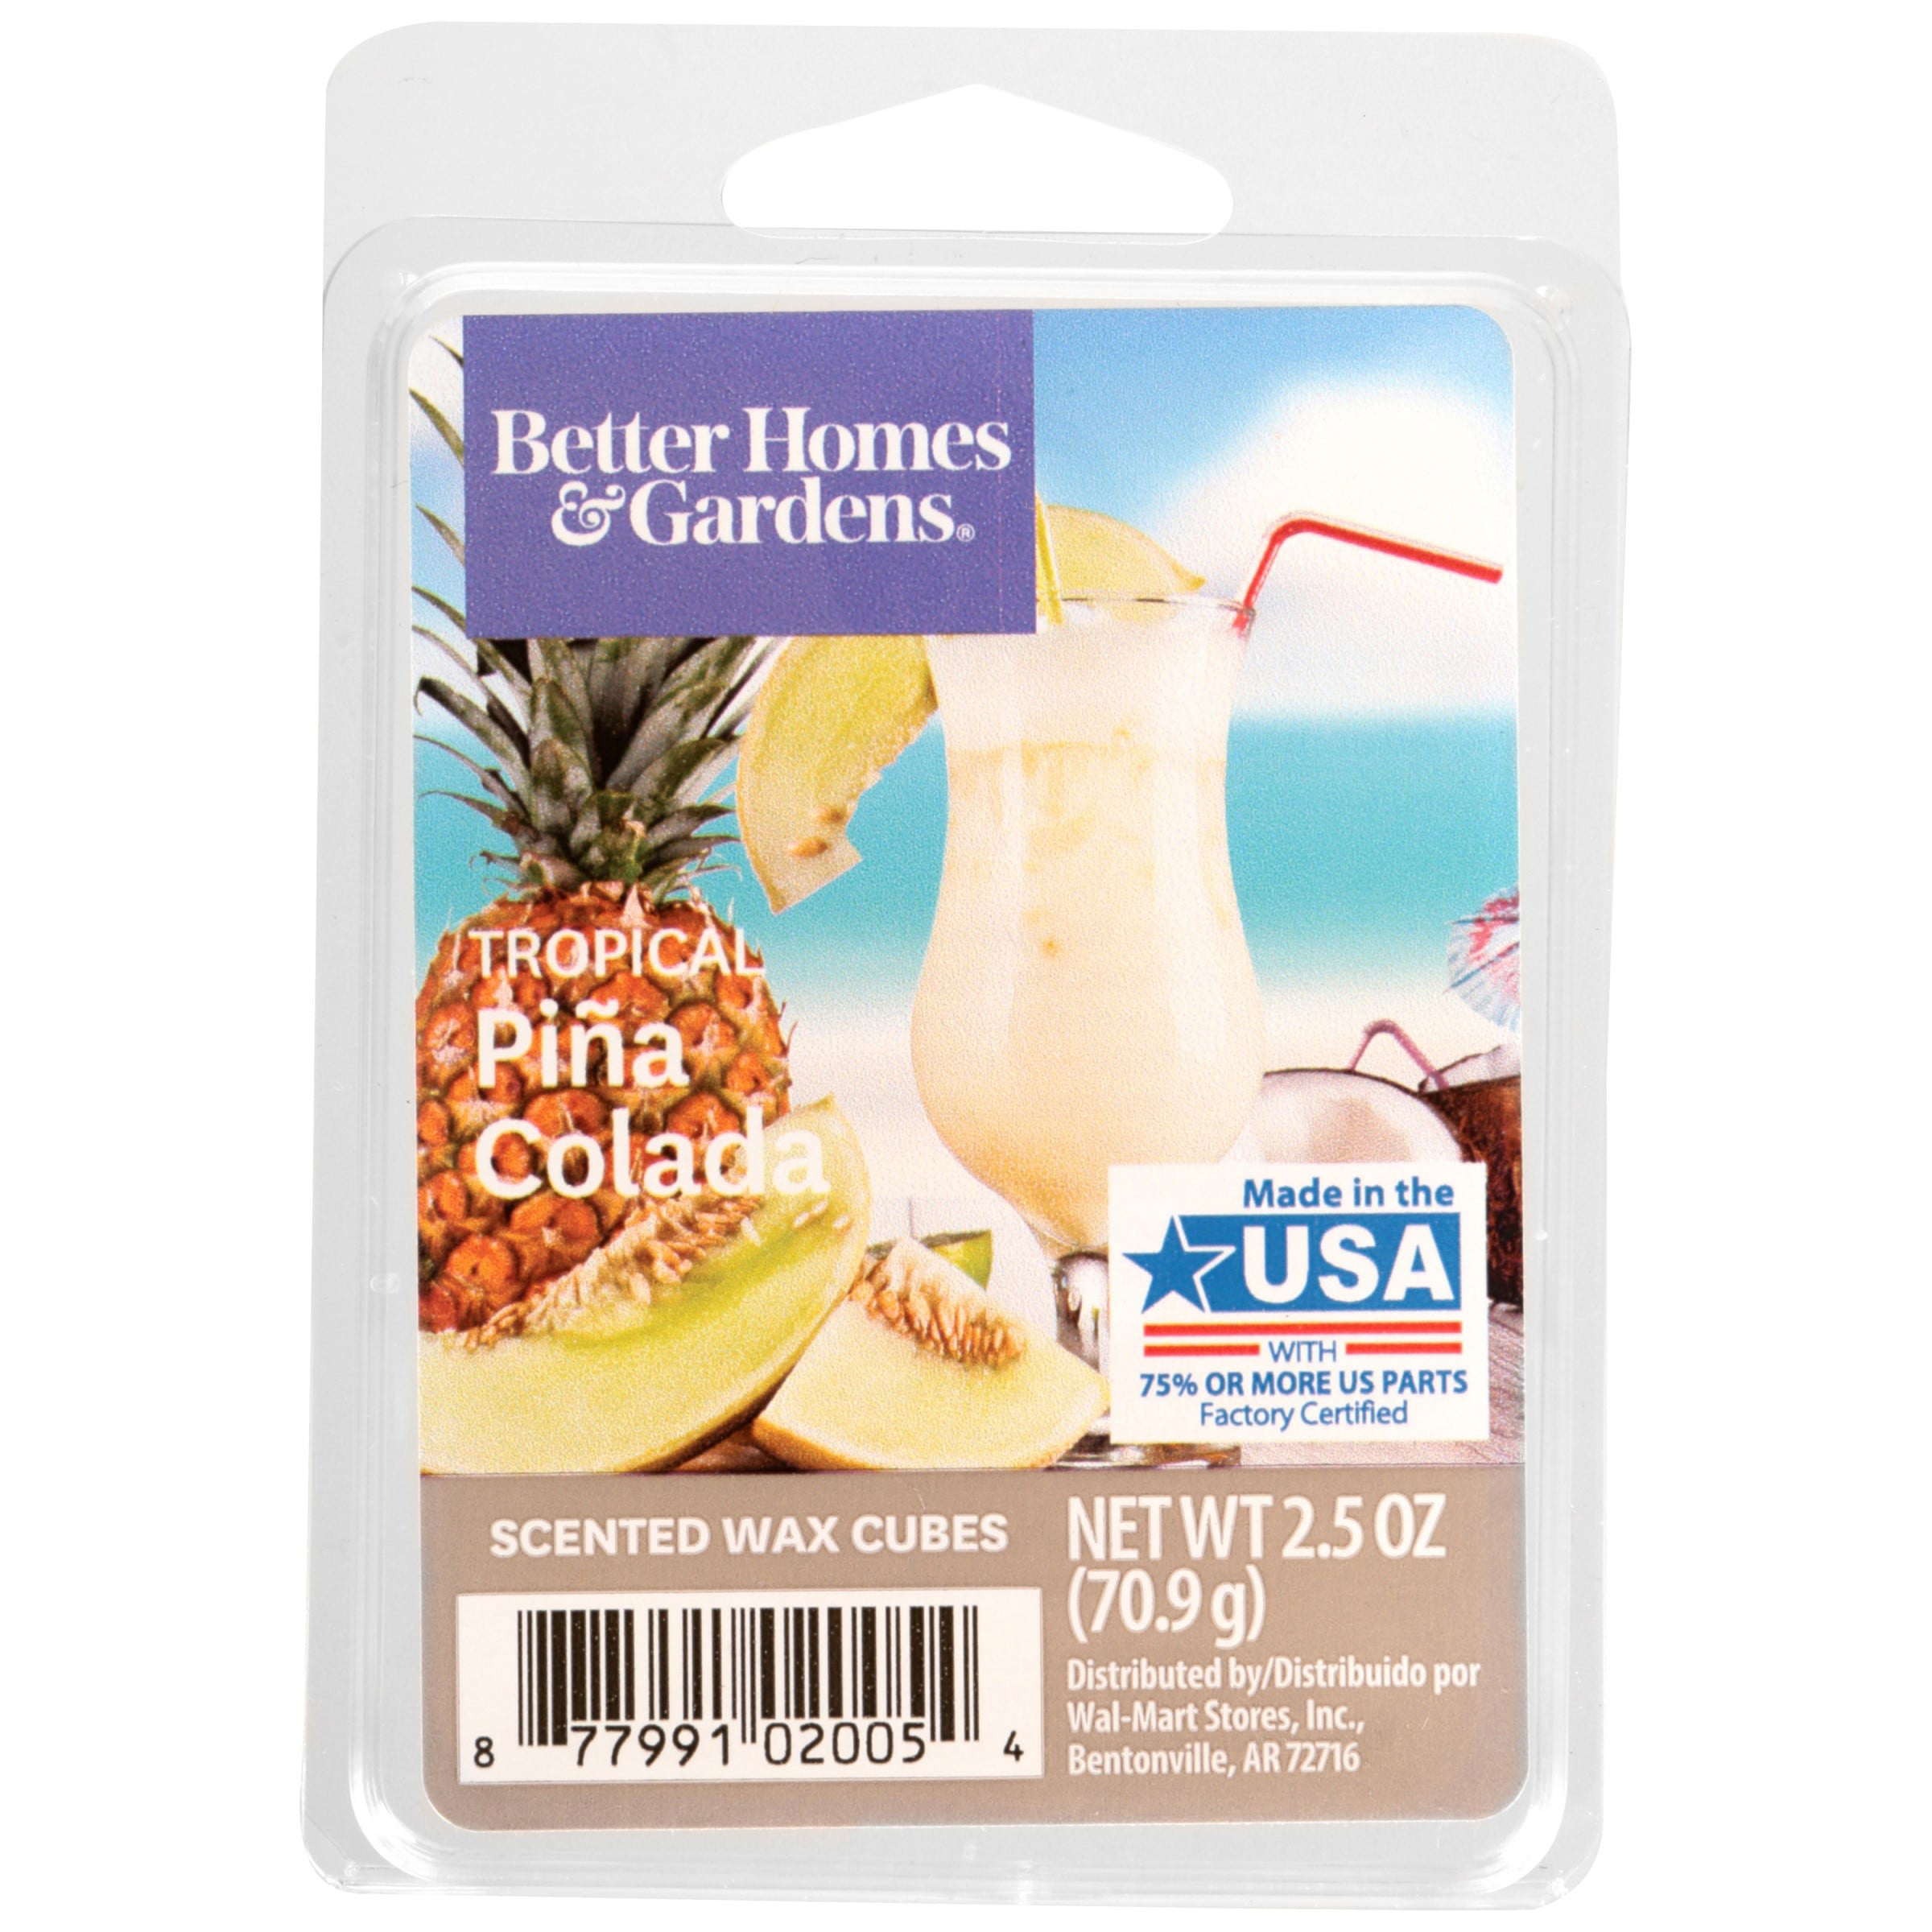 Tropical Pina Colada Scented Wax Melts, Better Homes & Gardens, 2.5 oz